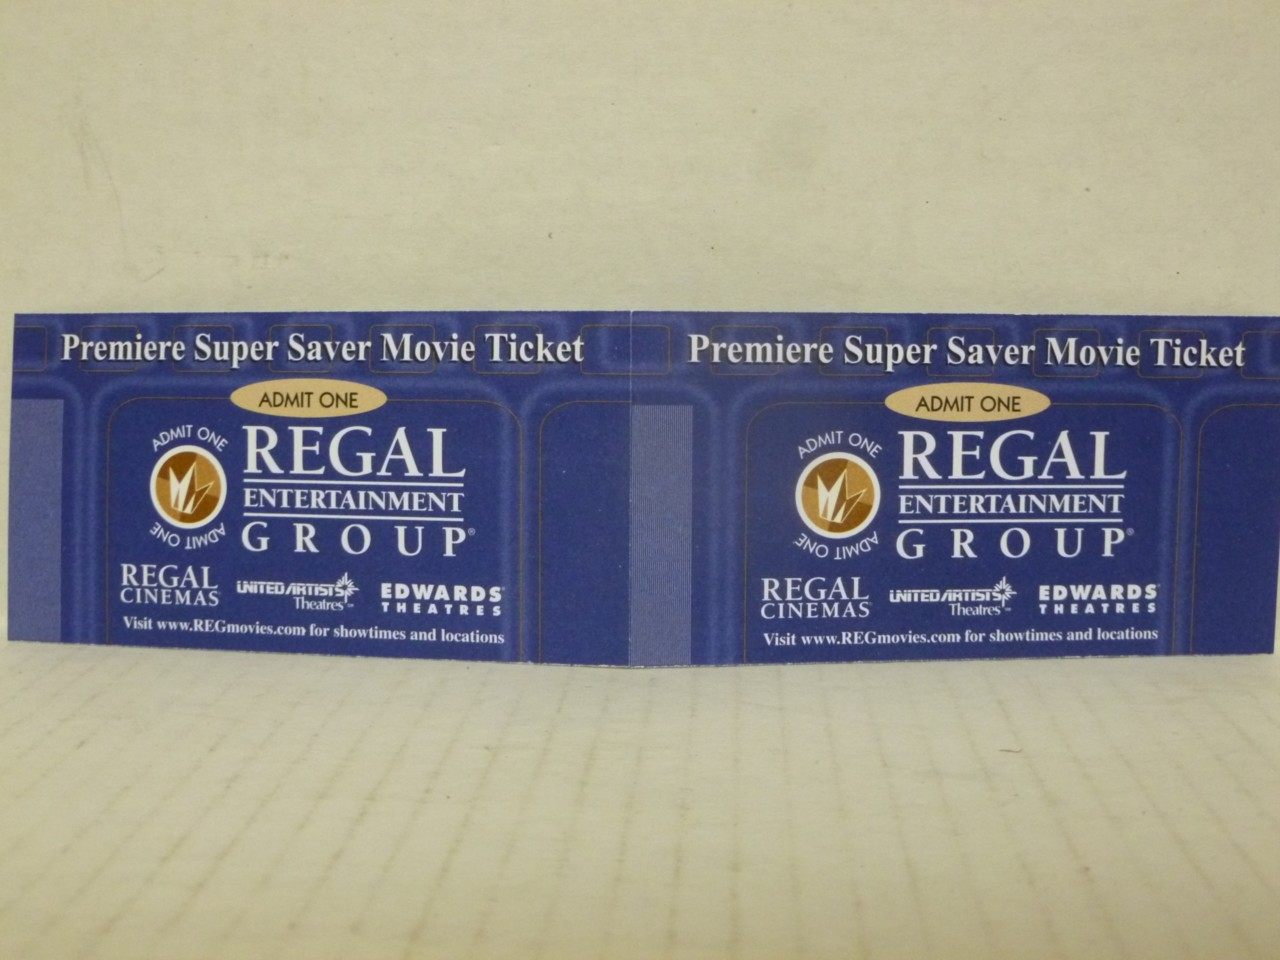 Home / Movie Theaters / Regal Cinema Premiere Supersaver Ticket. Regal Cinema Premiere Supersaver Ticket $ Regal Cinema Premiere Supersaver Ticket. Good for all shows, all times, all locations – No Restrictions – even Opening Night! Regular price: $ BBC Member price: $